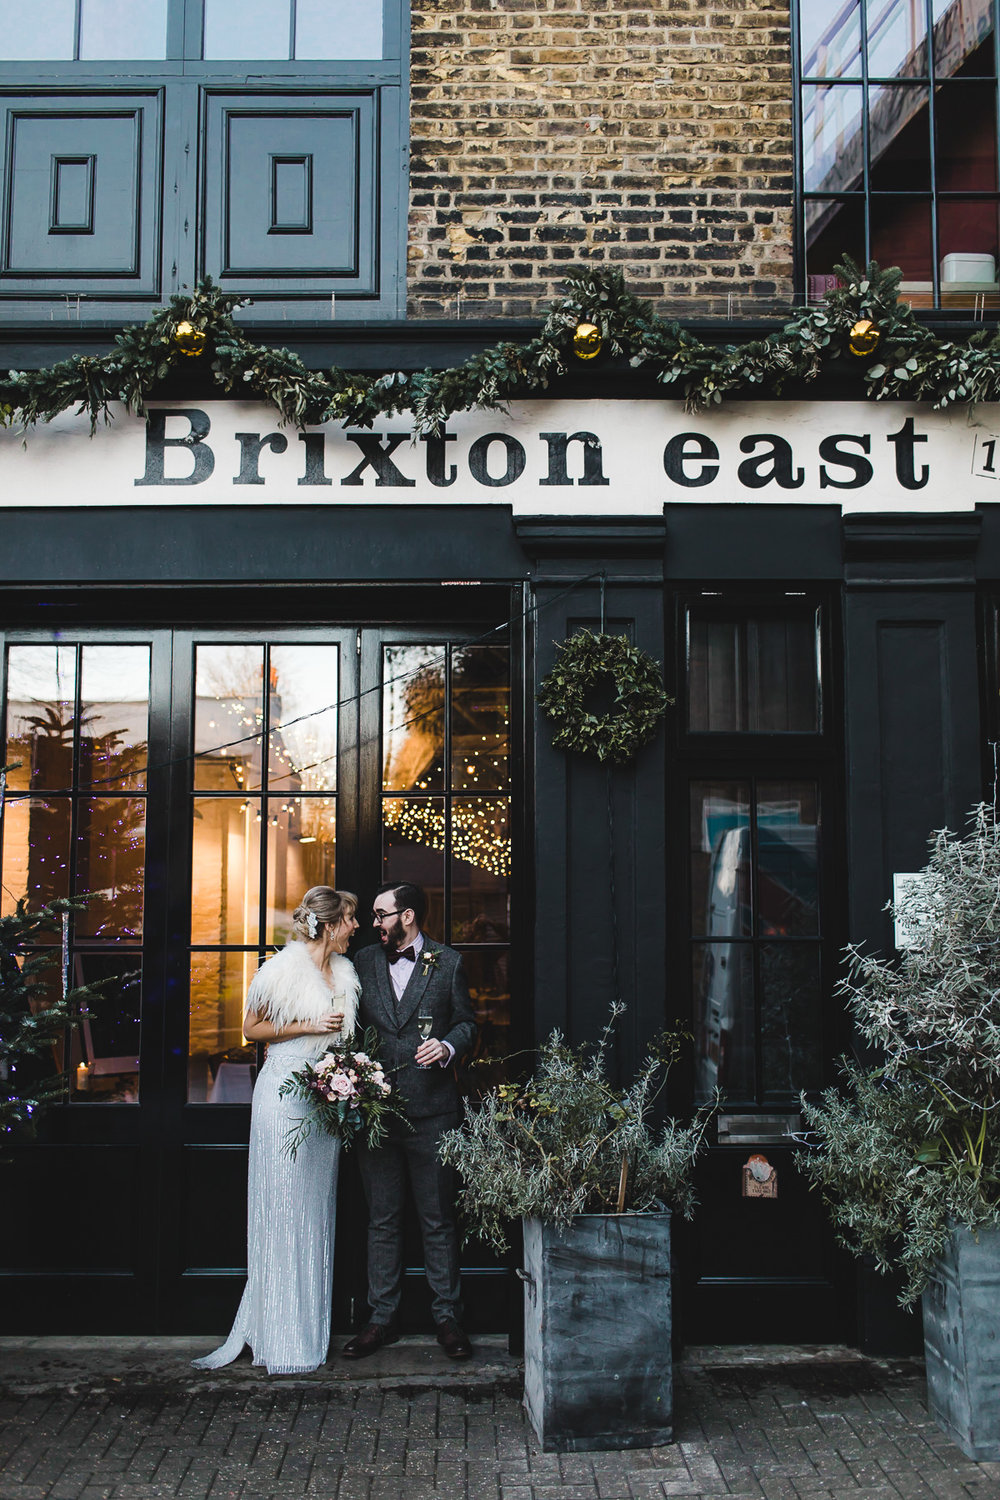 Brixton East 1871 wedding photography